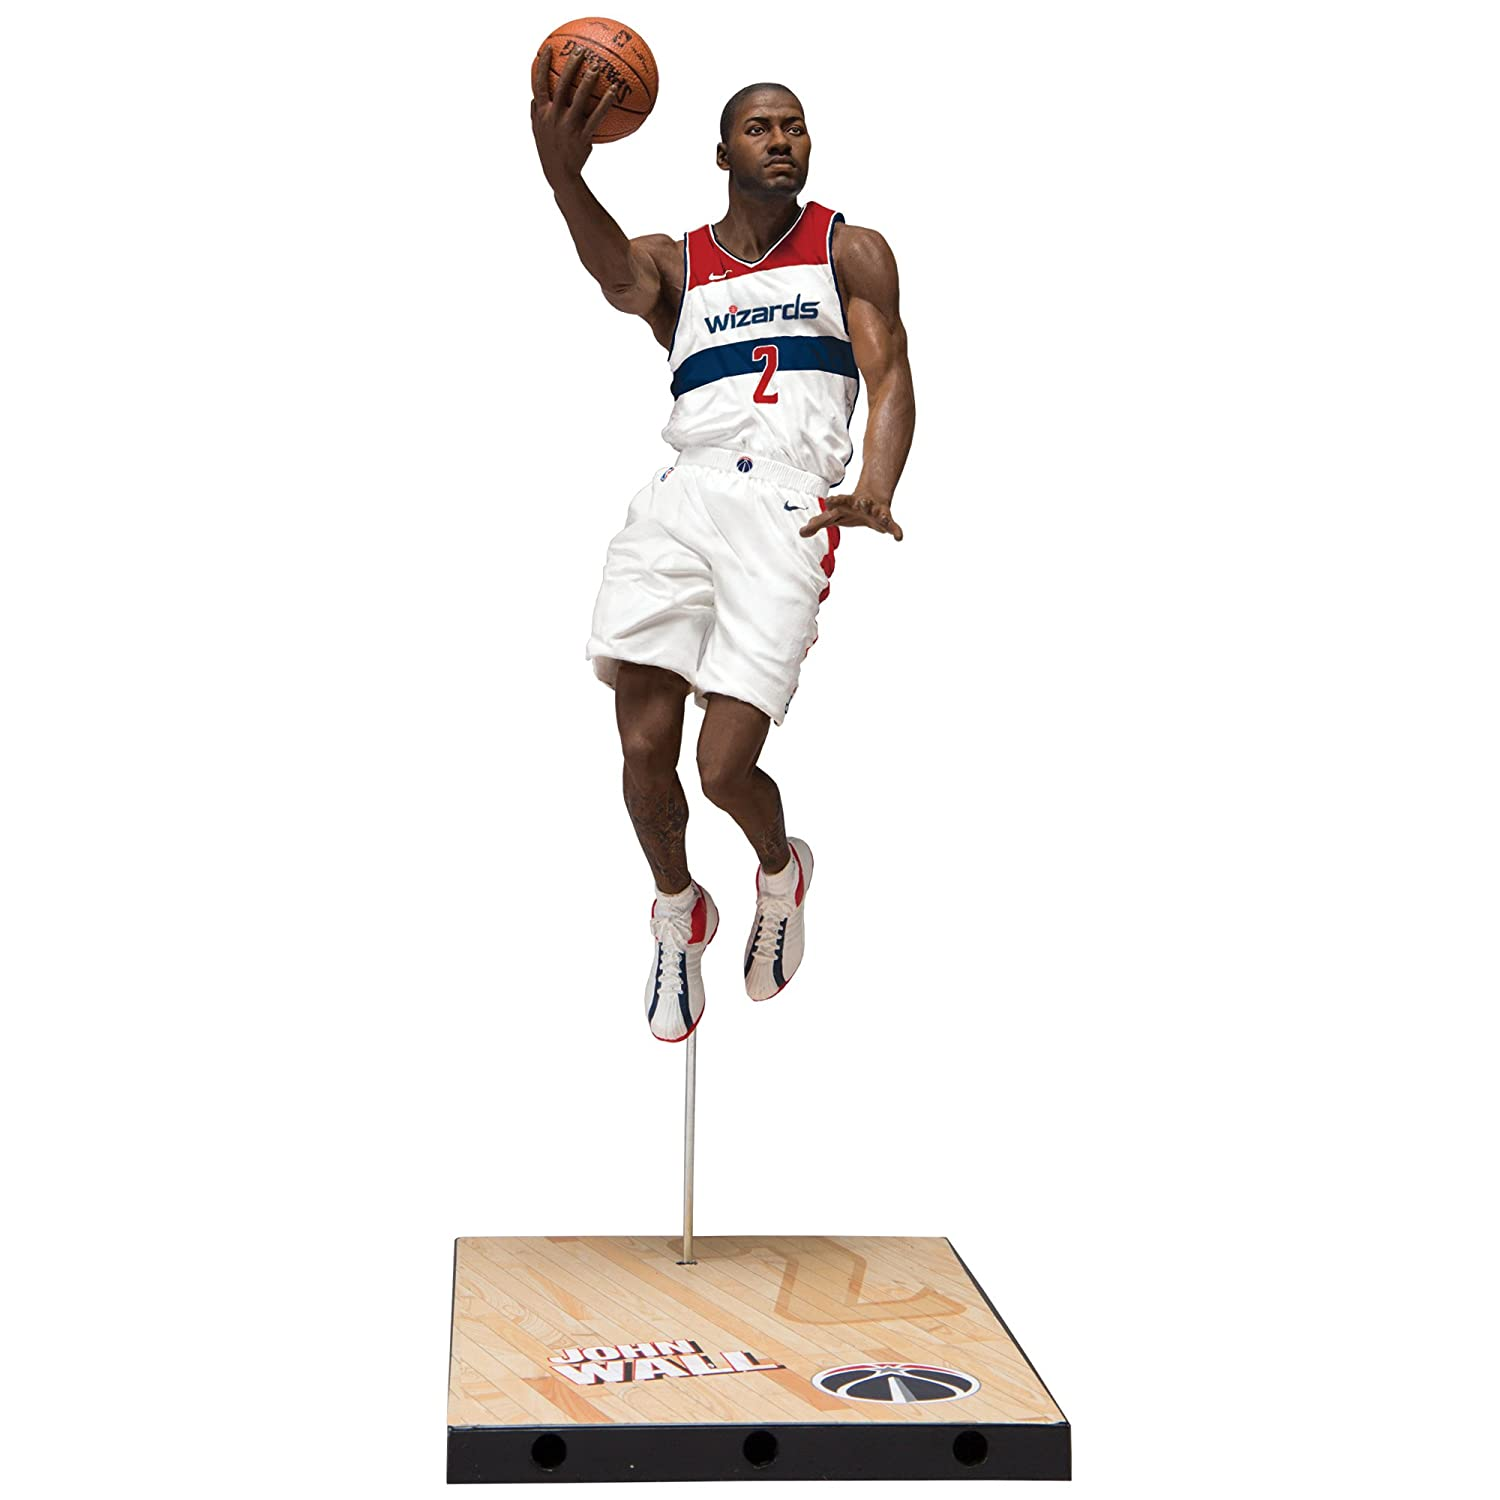 75ff4a4dbf70 Buy McFarlane Toys NBA Series 31 John Wall Washington Wizards Action Figure  Online at Low Prices in India - Amazon.in